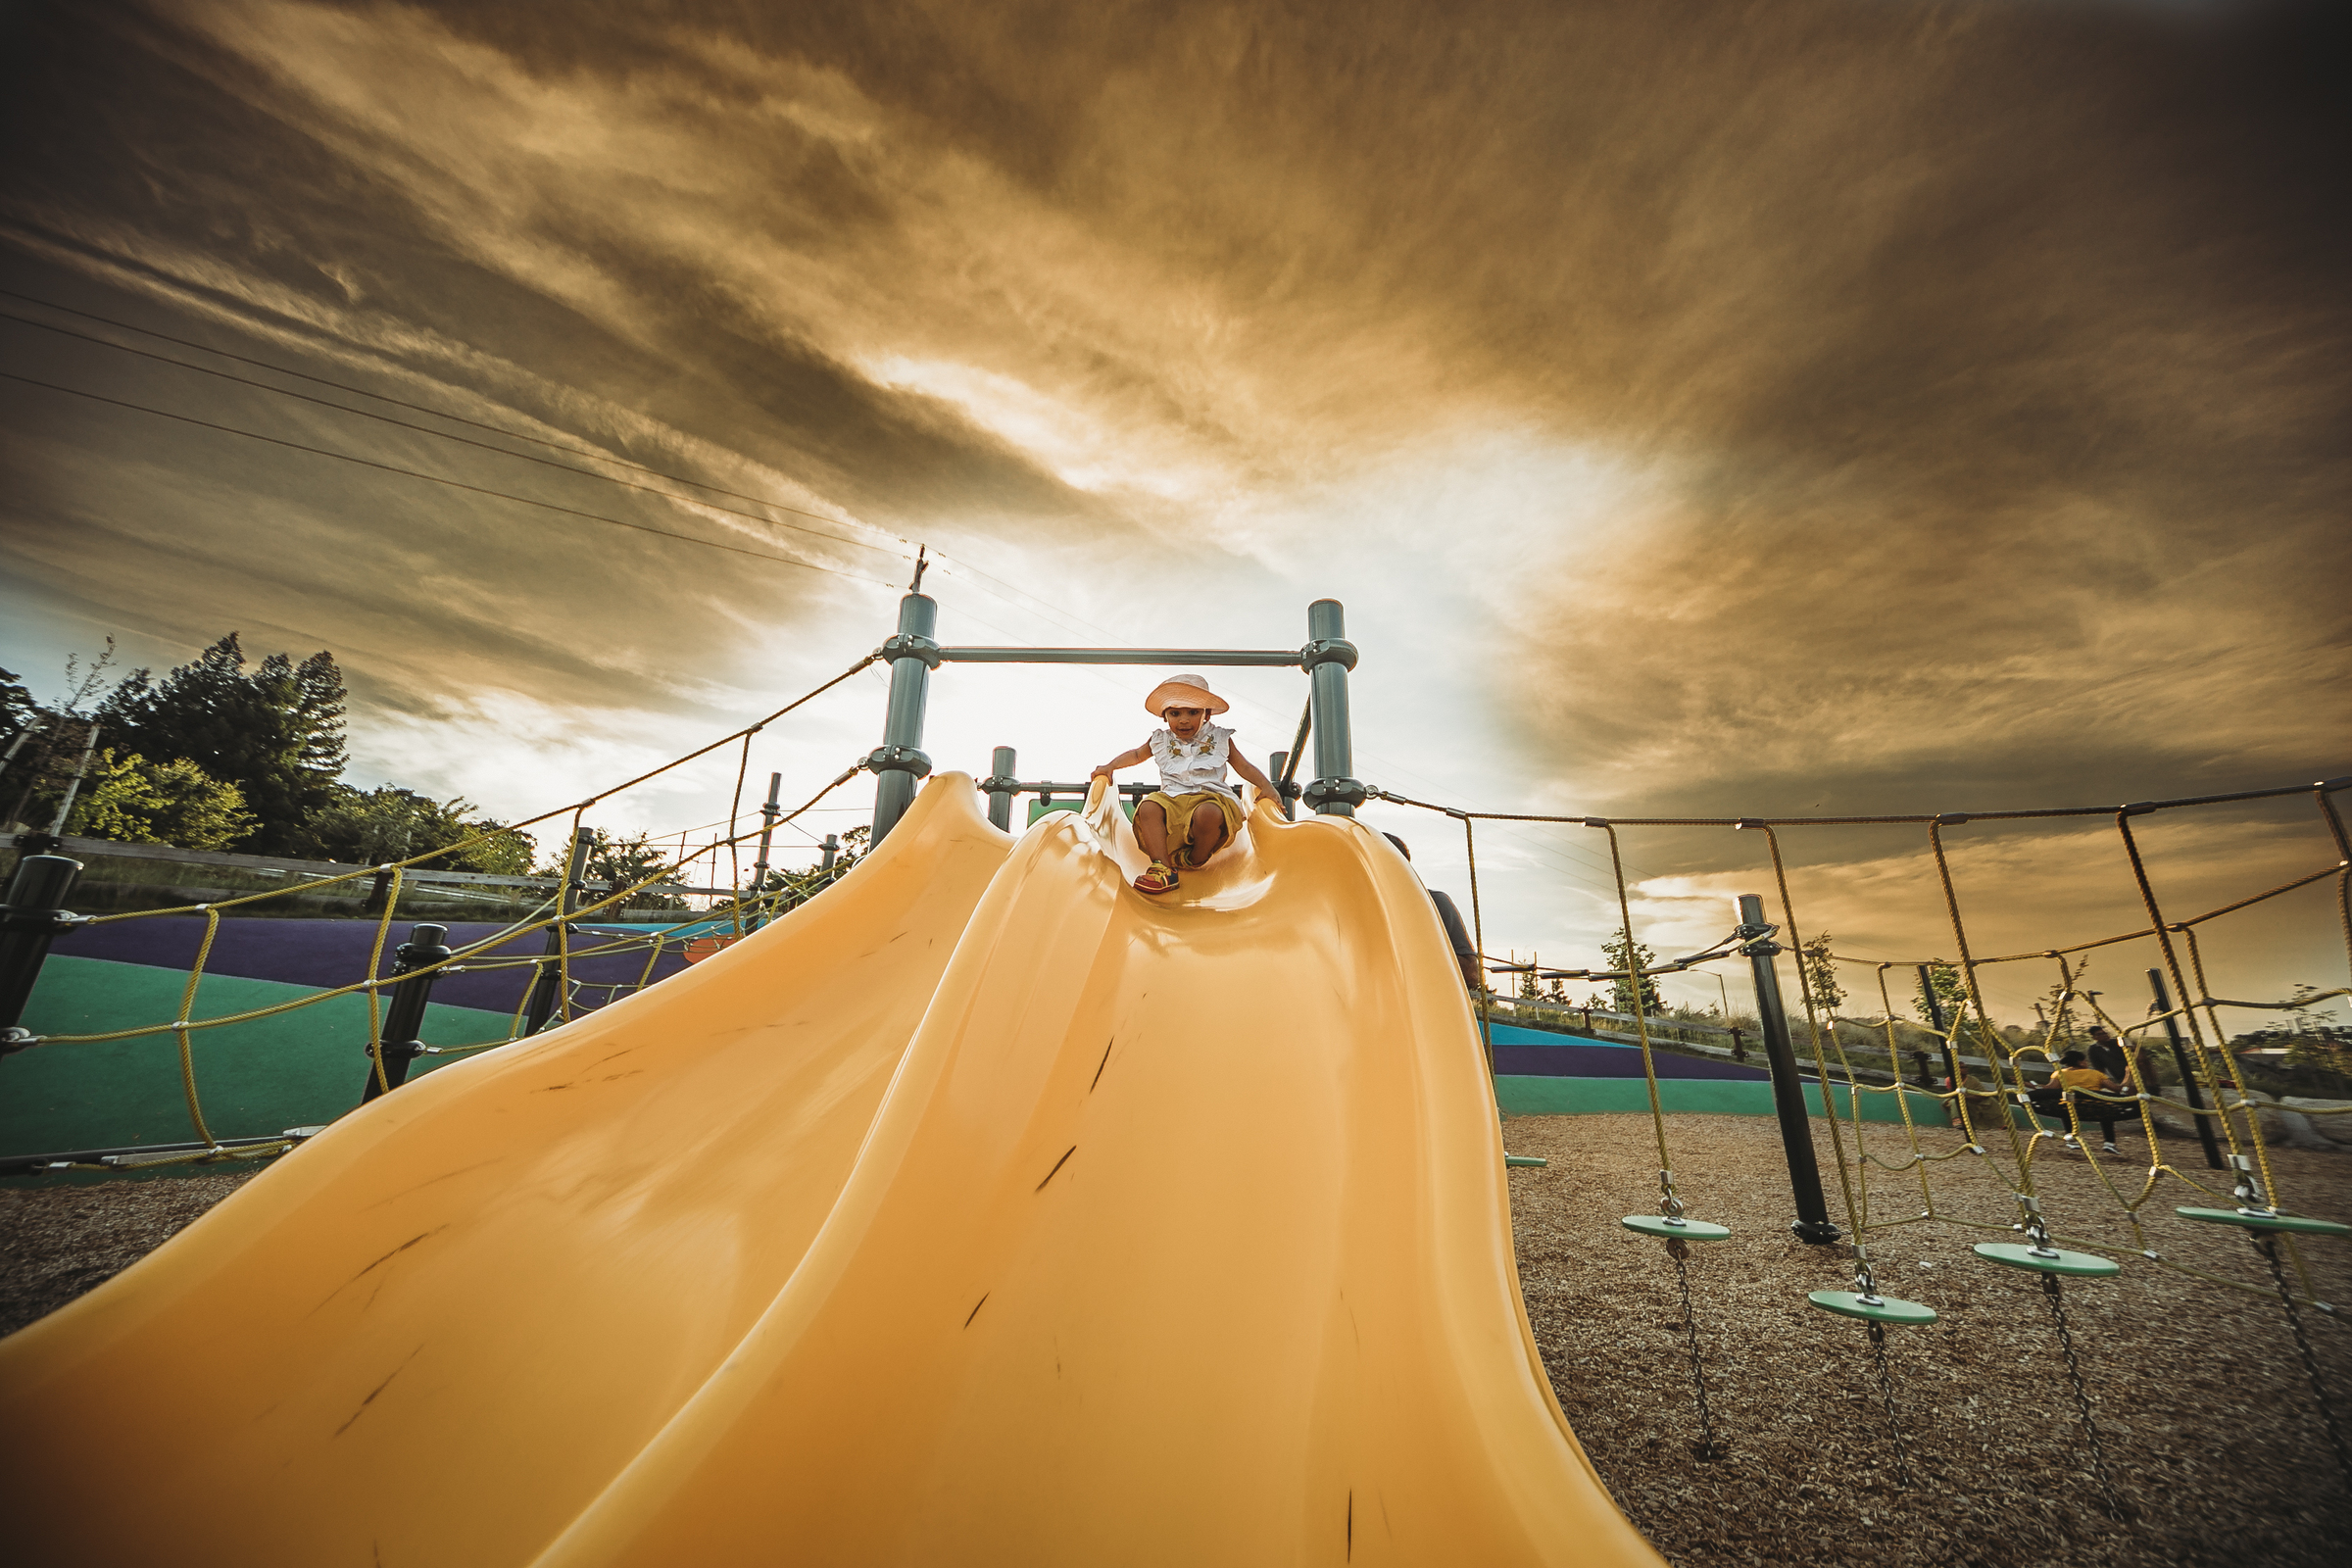 child at top of yellow slide after edit by jyo bhamidipati